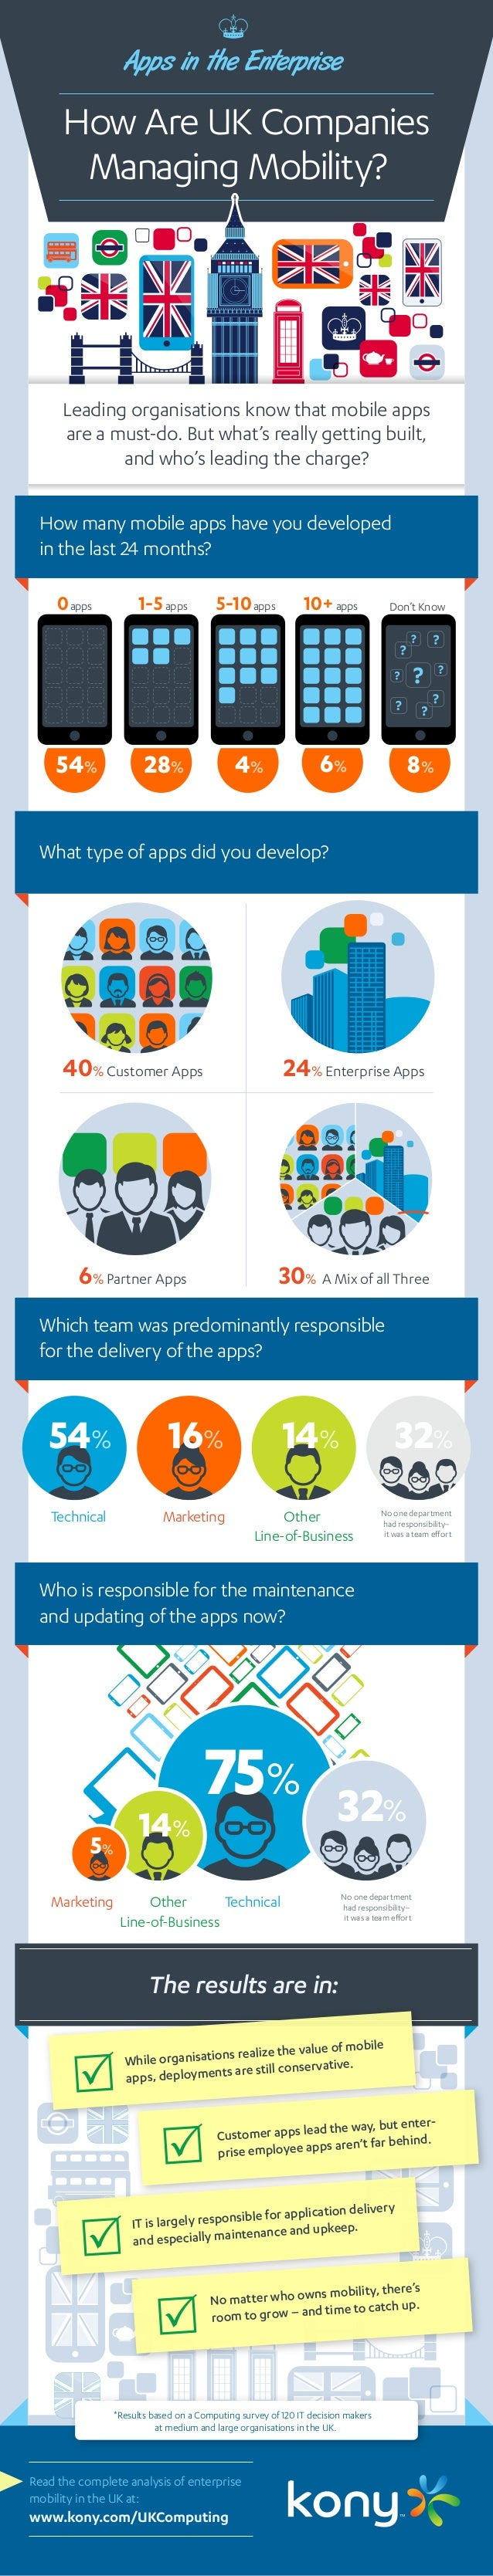 Apps in the Enterprise: How Are UK Companies Managing Mobility